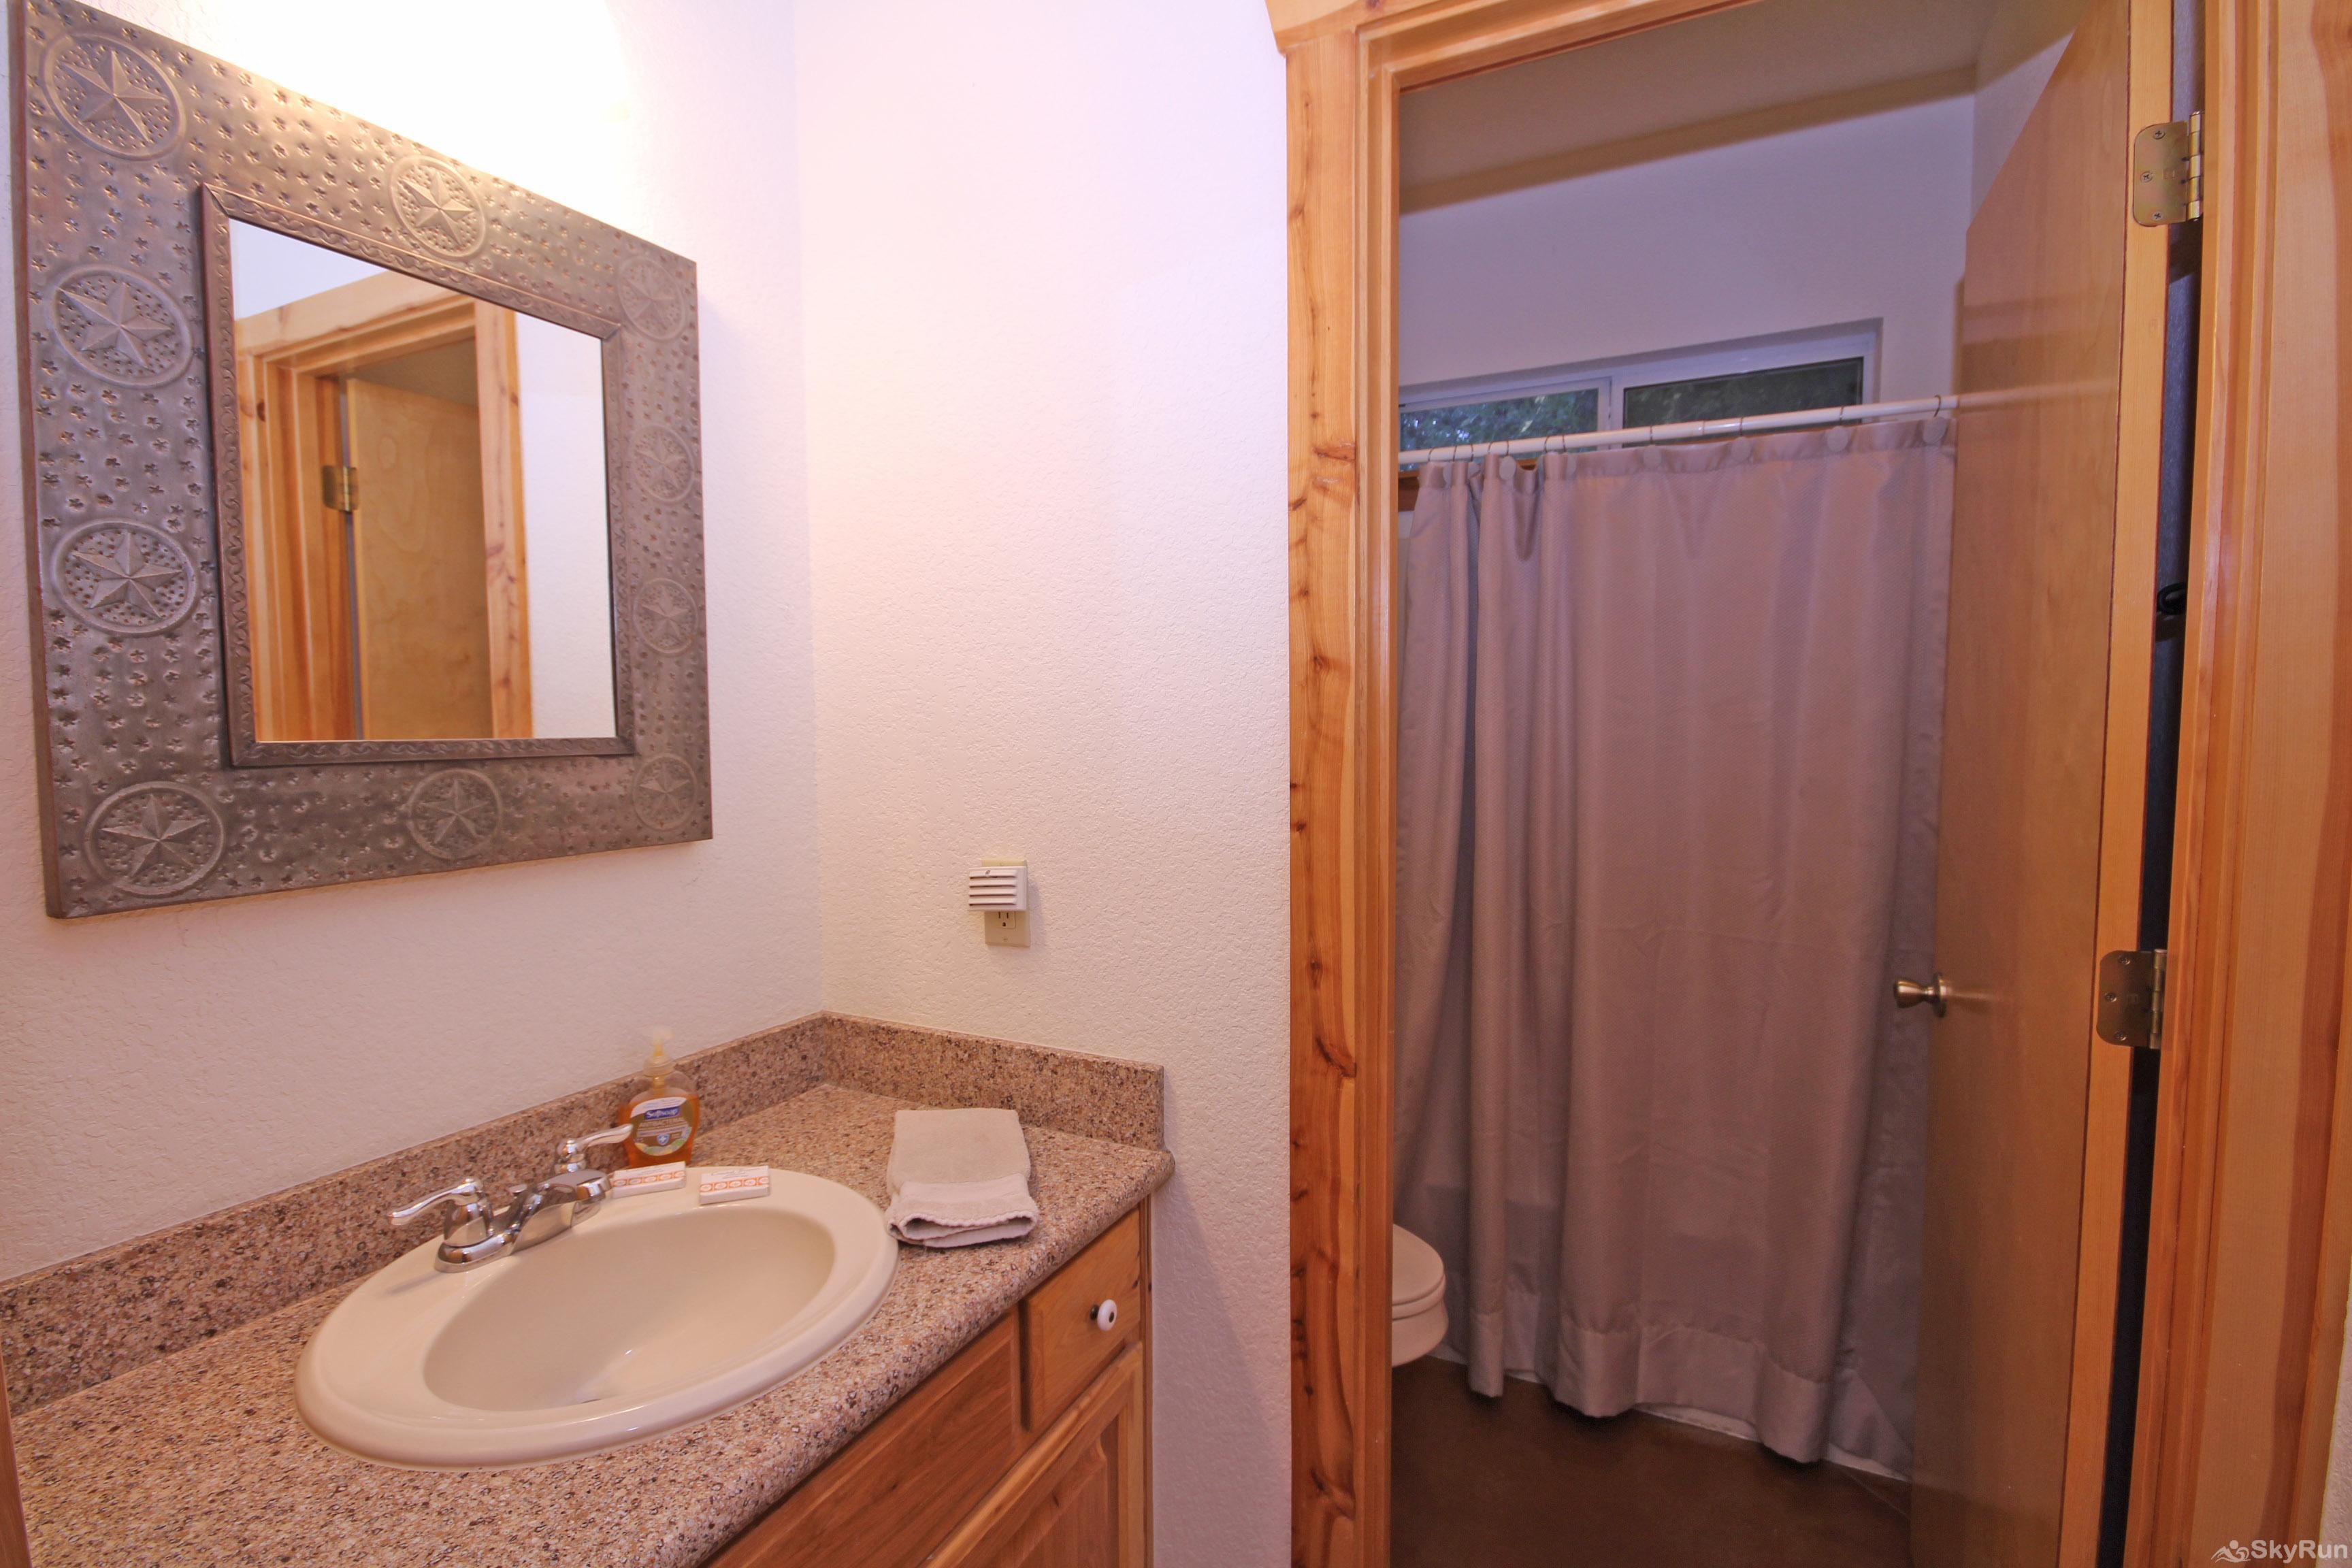 MARICOPA RIVER RESORT Full Bath with Shower/Tub Combo